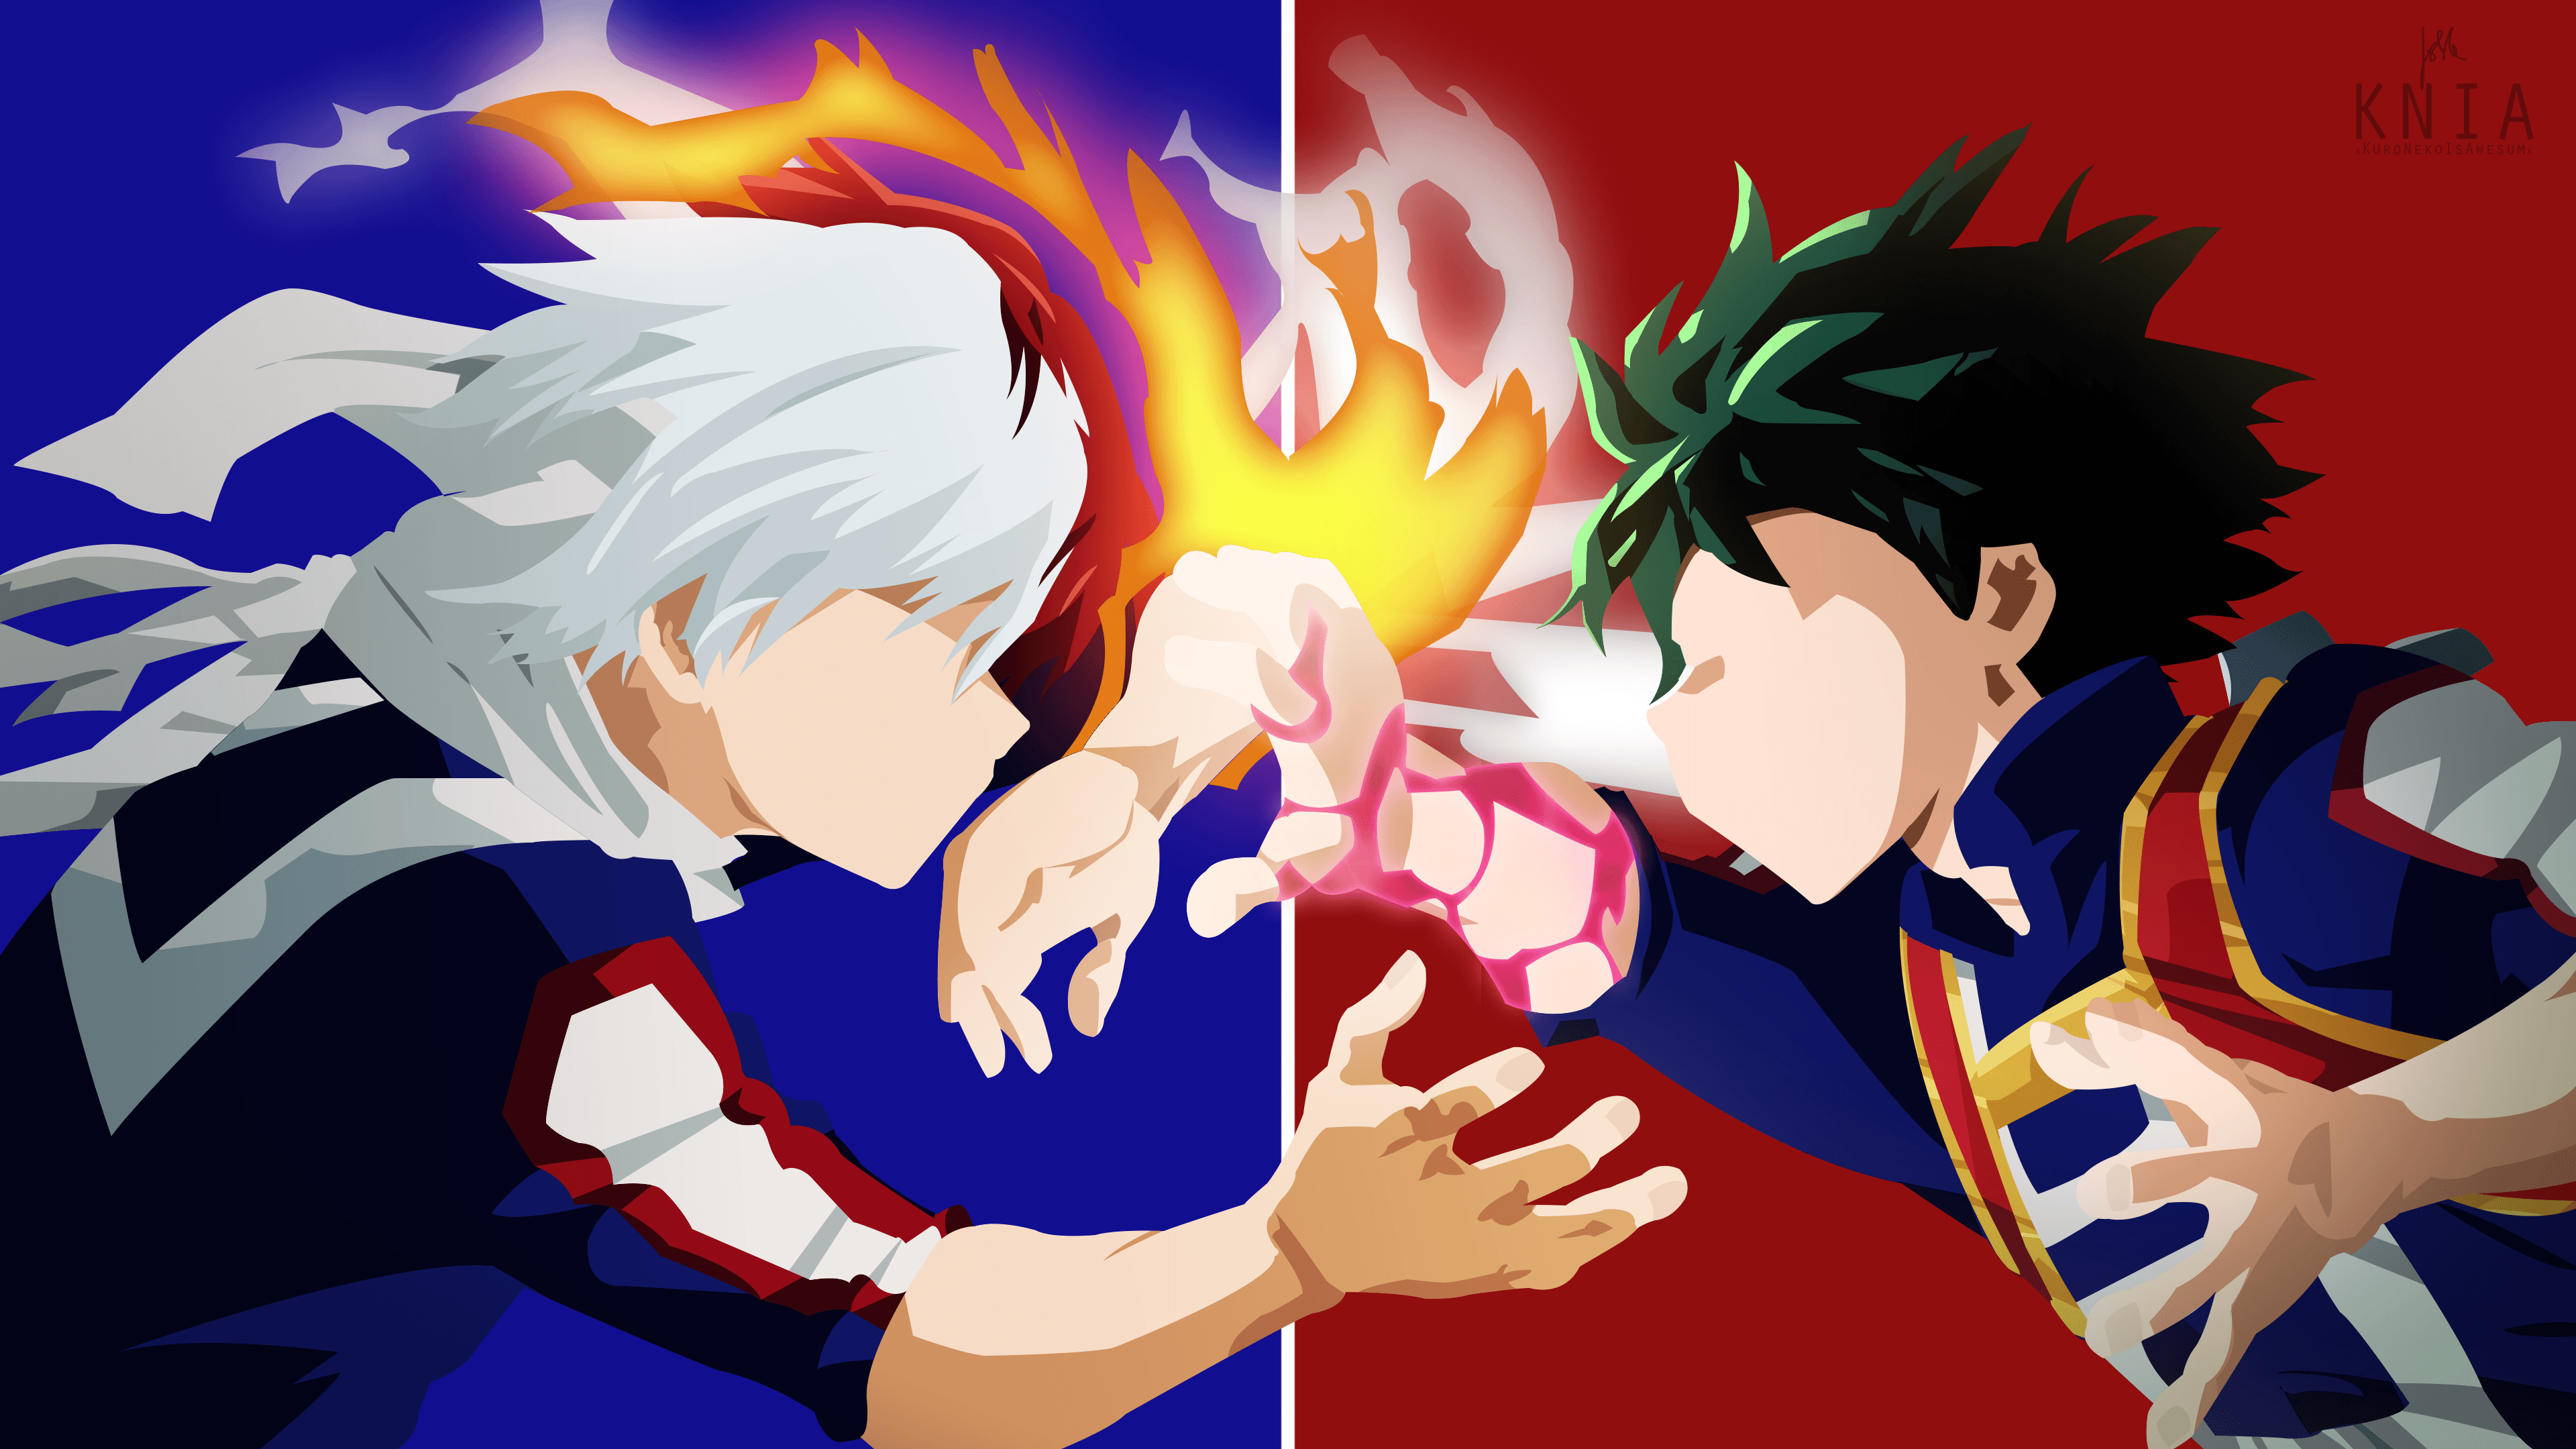 3840x2160 199 4k Ultra Hd My Hero Academia Wallpapers Background